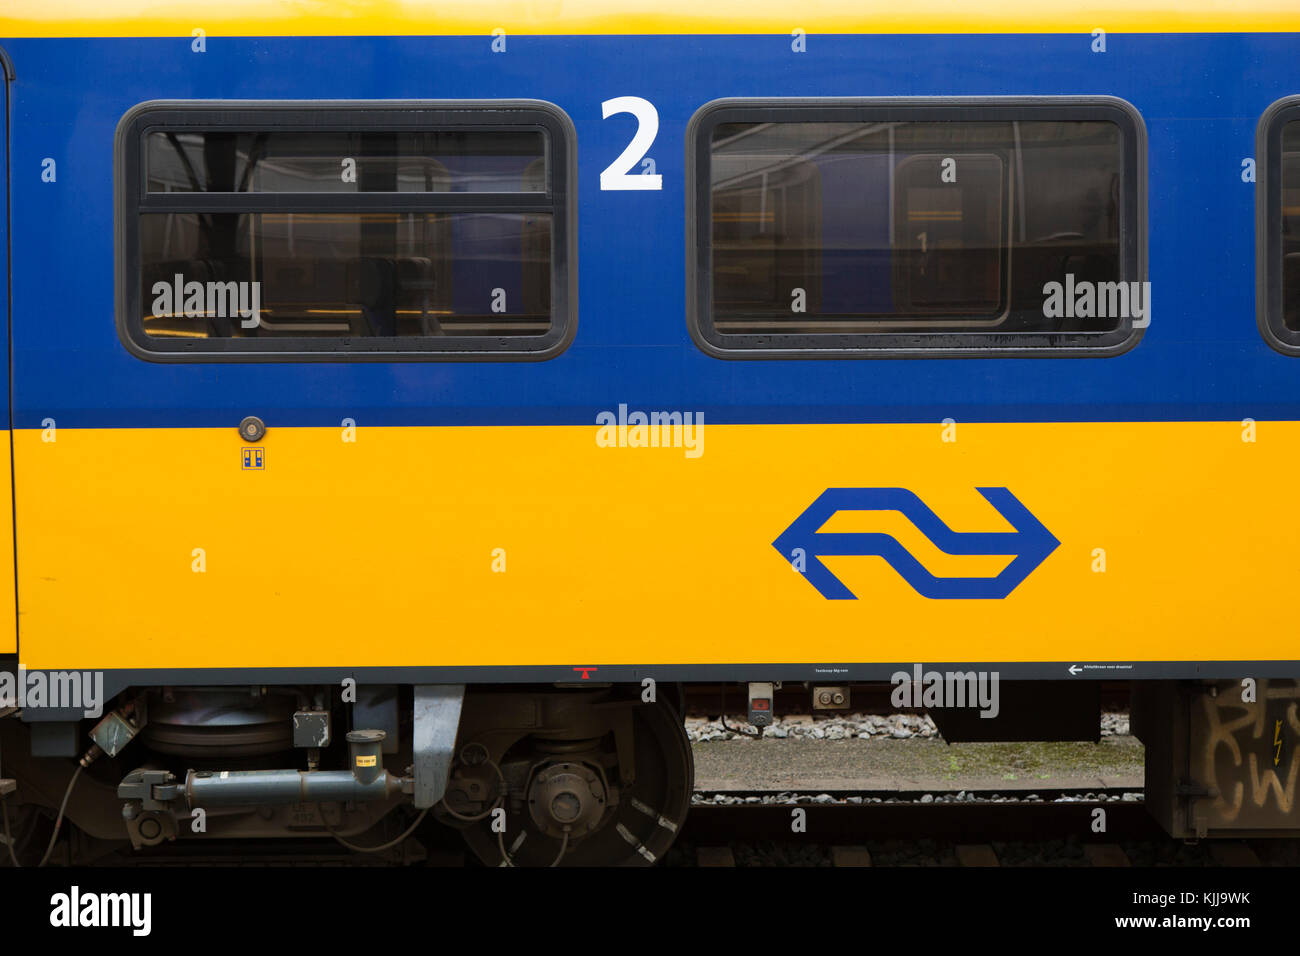 A train on the track at Groningen, in the Netherlands. It bears the yellow and blue livery of the Nederlandse Spoorwegen - Stock Image